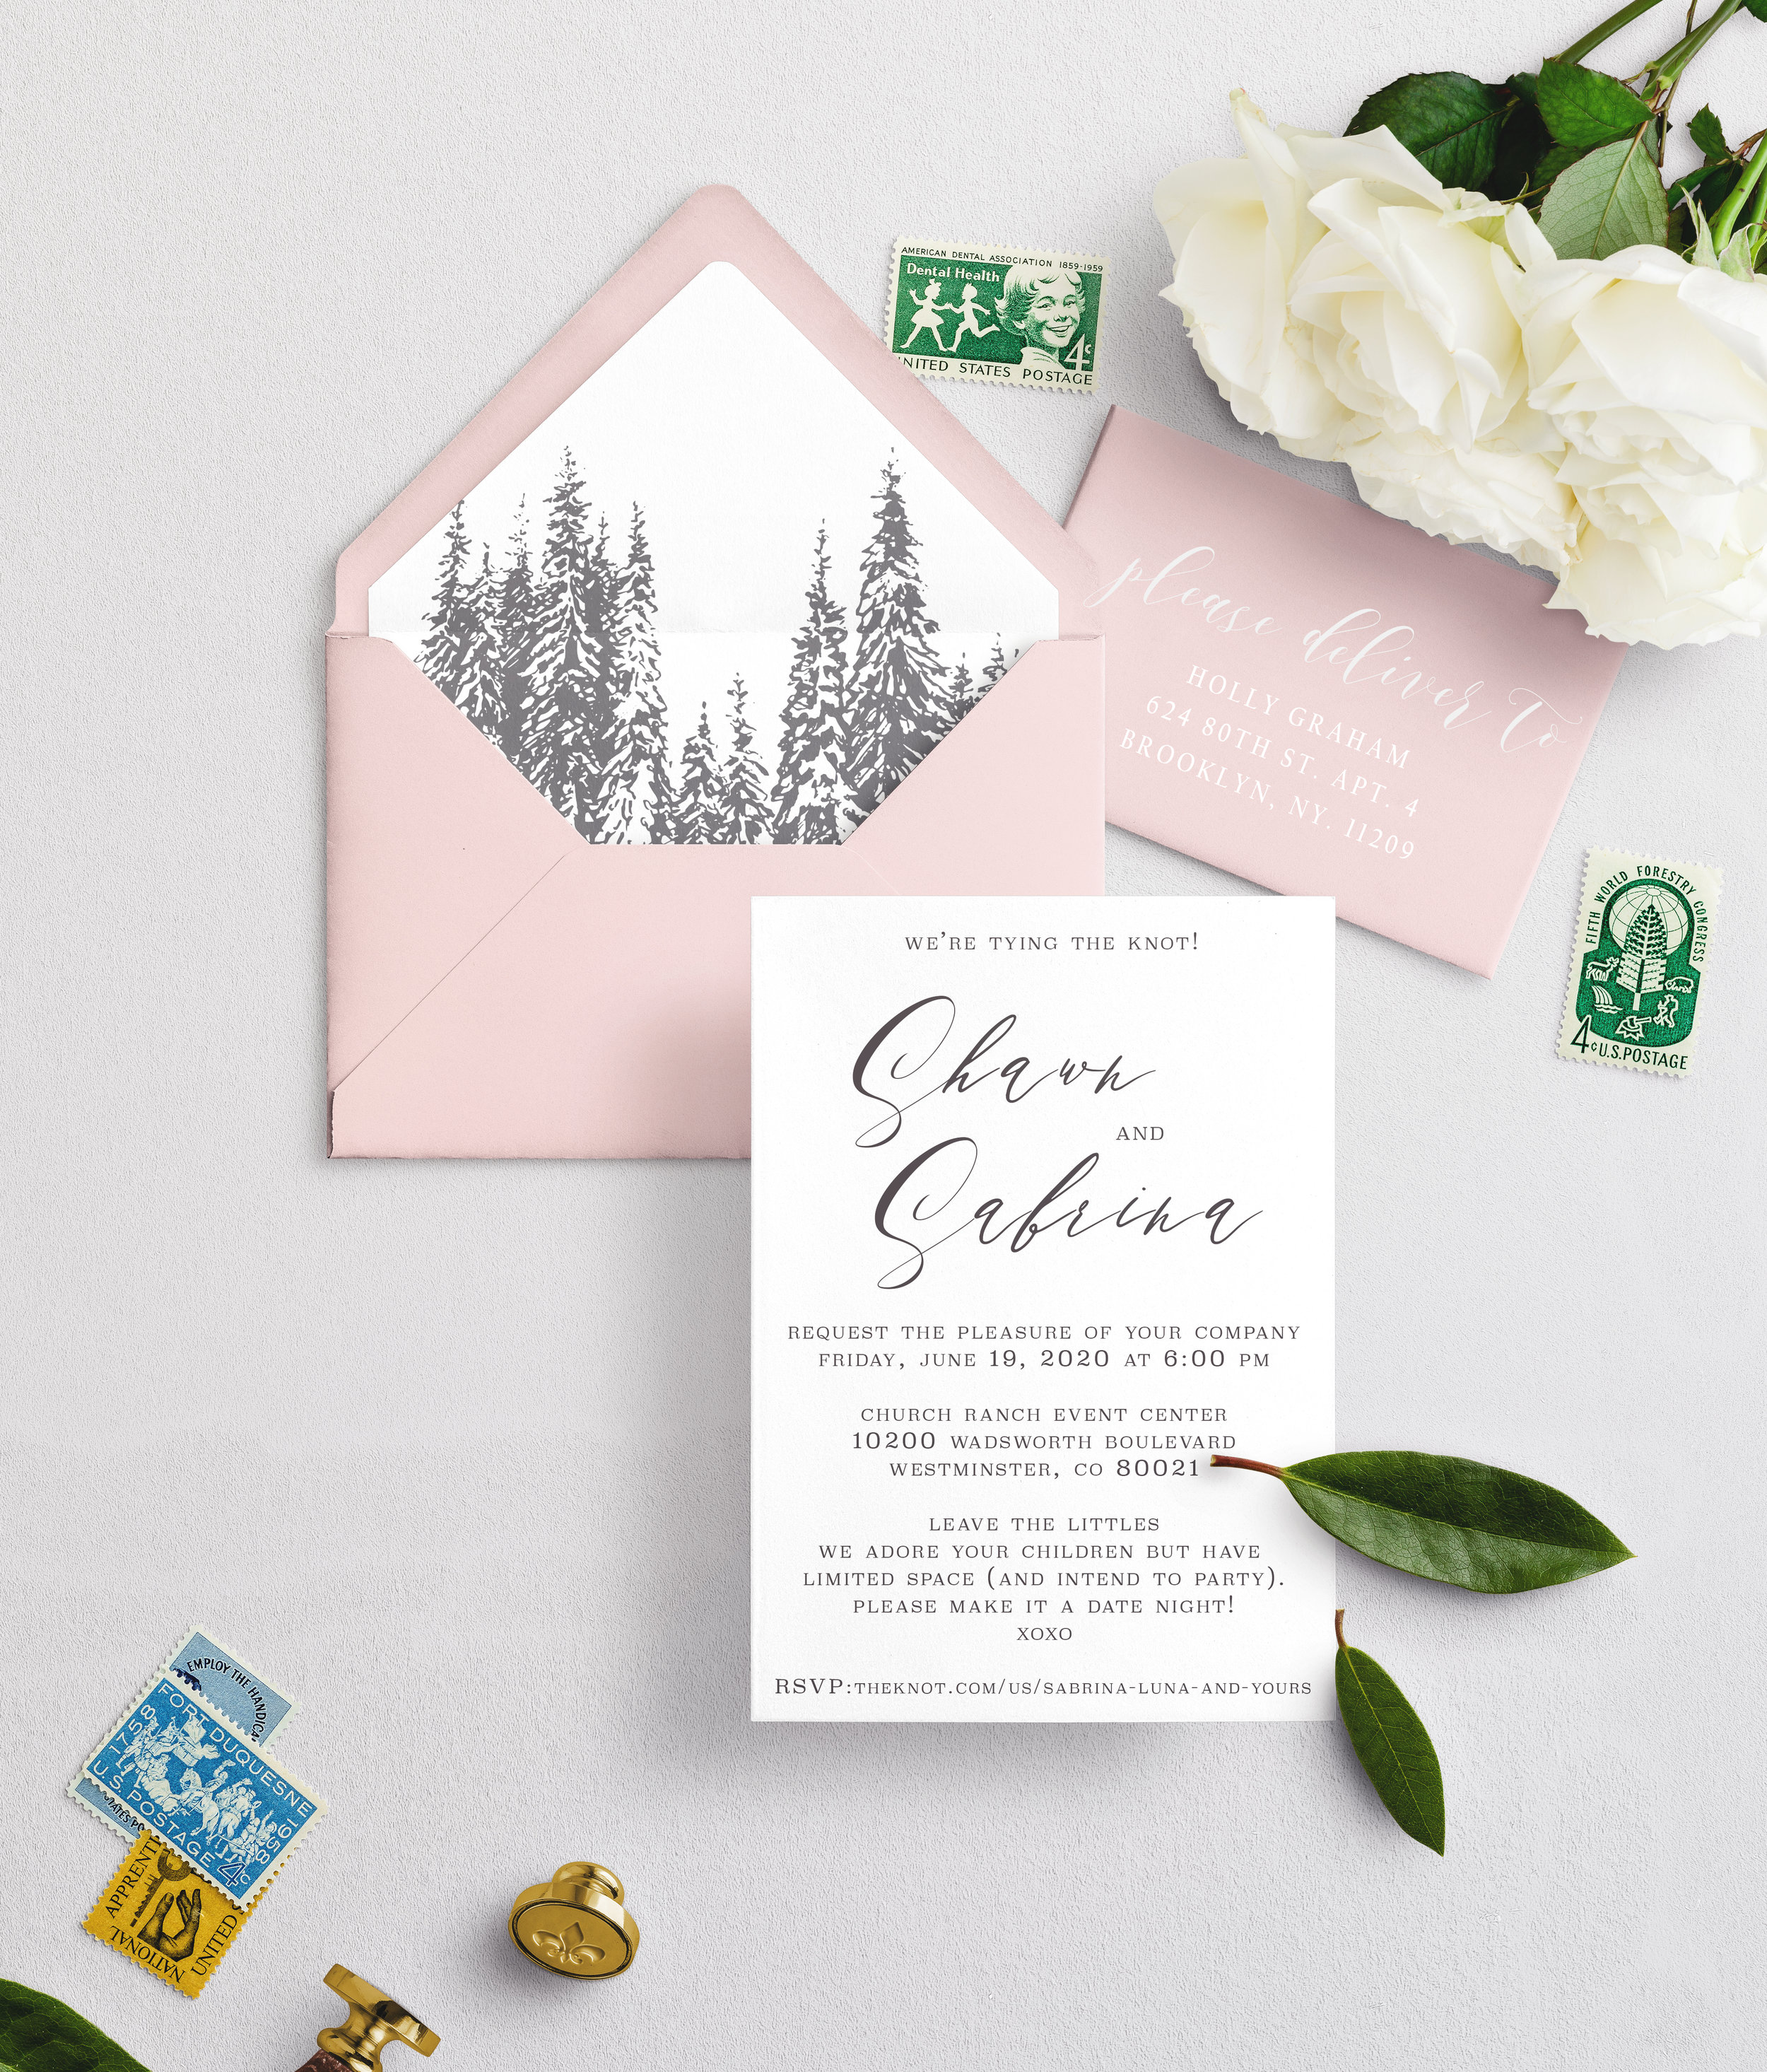 We included your wedding colors and our standard aspen tree liner:   Blush, White, and light gray.  Please let us know if you would like to invert or change out any of the colors.   We have your current shipping & return address as:   15953 E. Nichols Place Englewood, CO 80112  This is the address that will be stamped on the back flap of the envelopes.   Order Details    Invitation Decision:  Cottonwood Suite (included)   Envelope Color?:    Quantity:  We do not need any additional invitations   Wording:  I do not want any additional cards, but I still want to personalize the invite. Please still send me the wording form   I want more!:  No, I love the current offerings, I do not need to meet in person.   Shipping Address/ Return Address:  15953 E Nichols Place Englewood CO 80112   Mailing Invitations:  Thank you, please send me the finished invitations, and we will mail them ourselves.